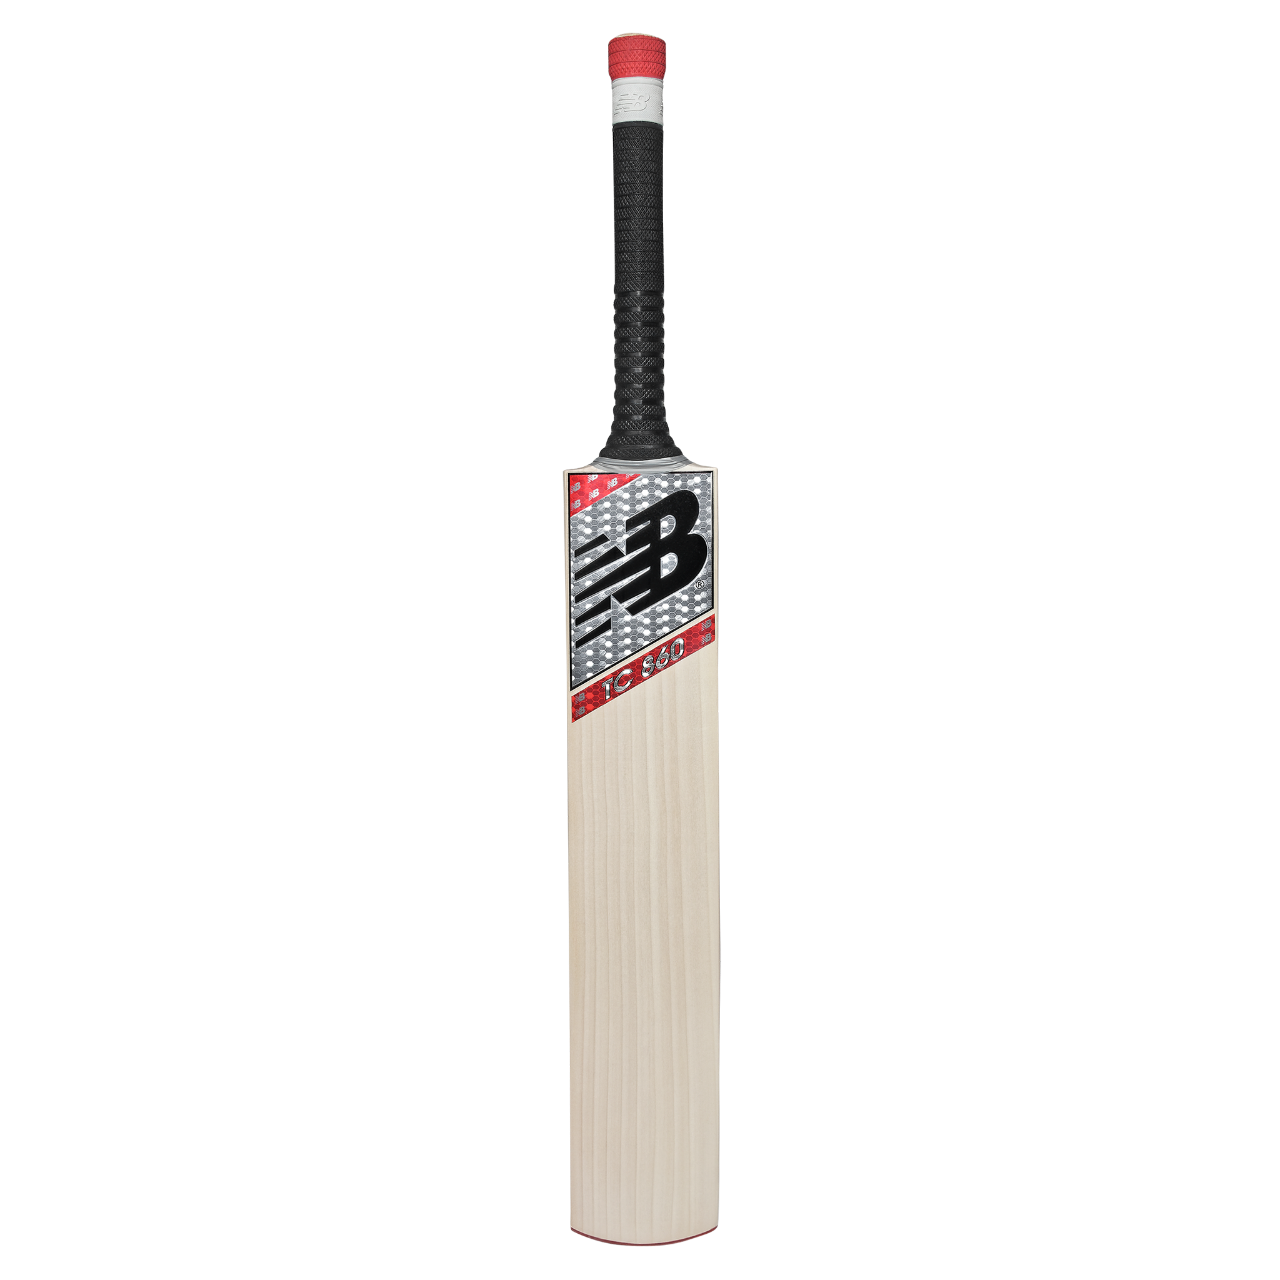 2021 New Balance TC 560 Cricket Bat